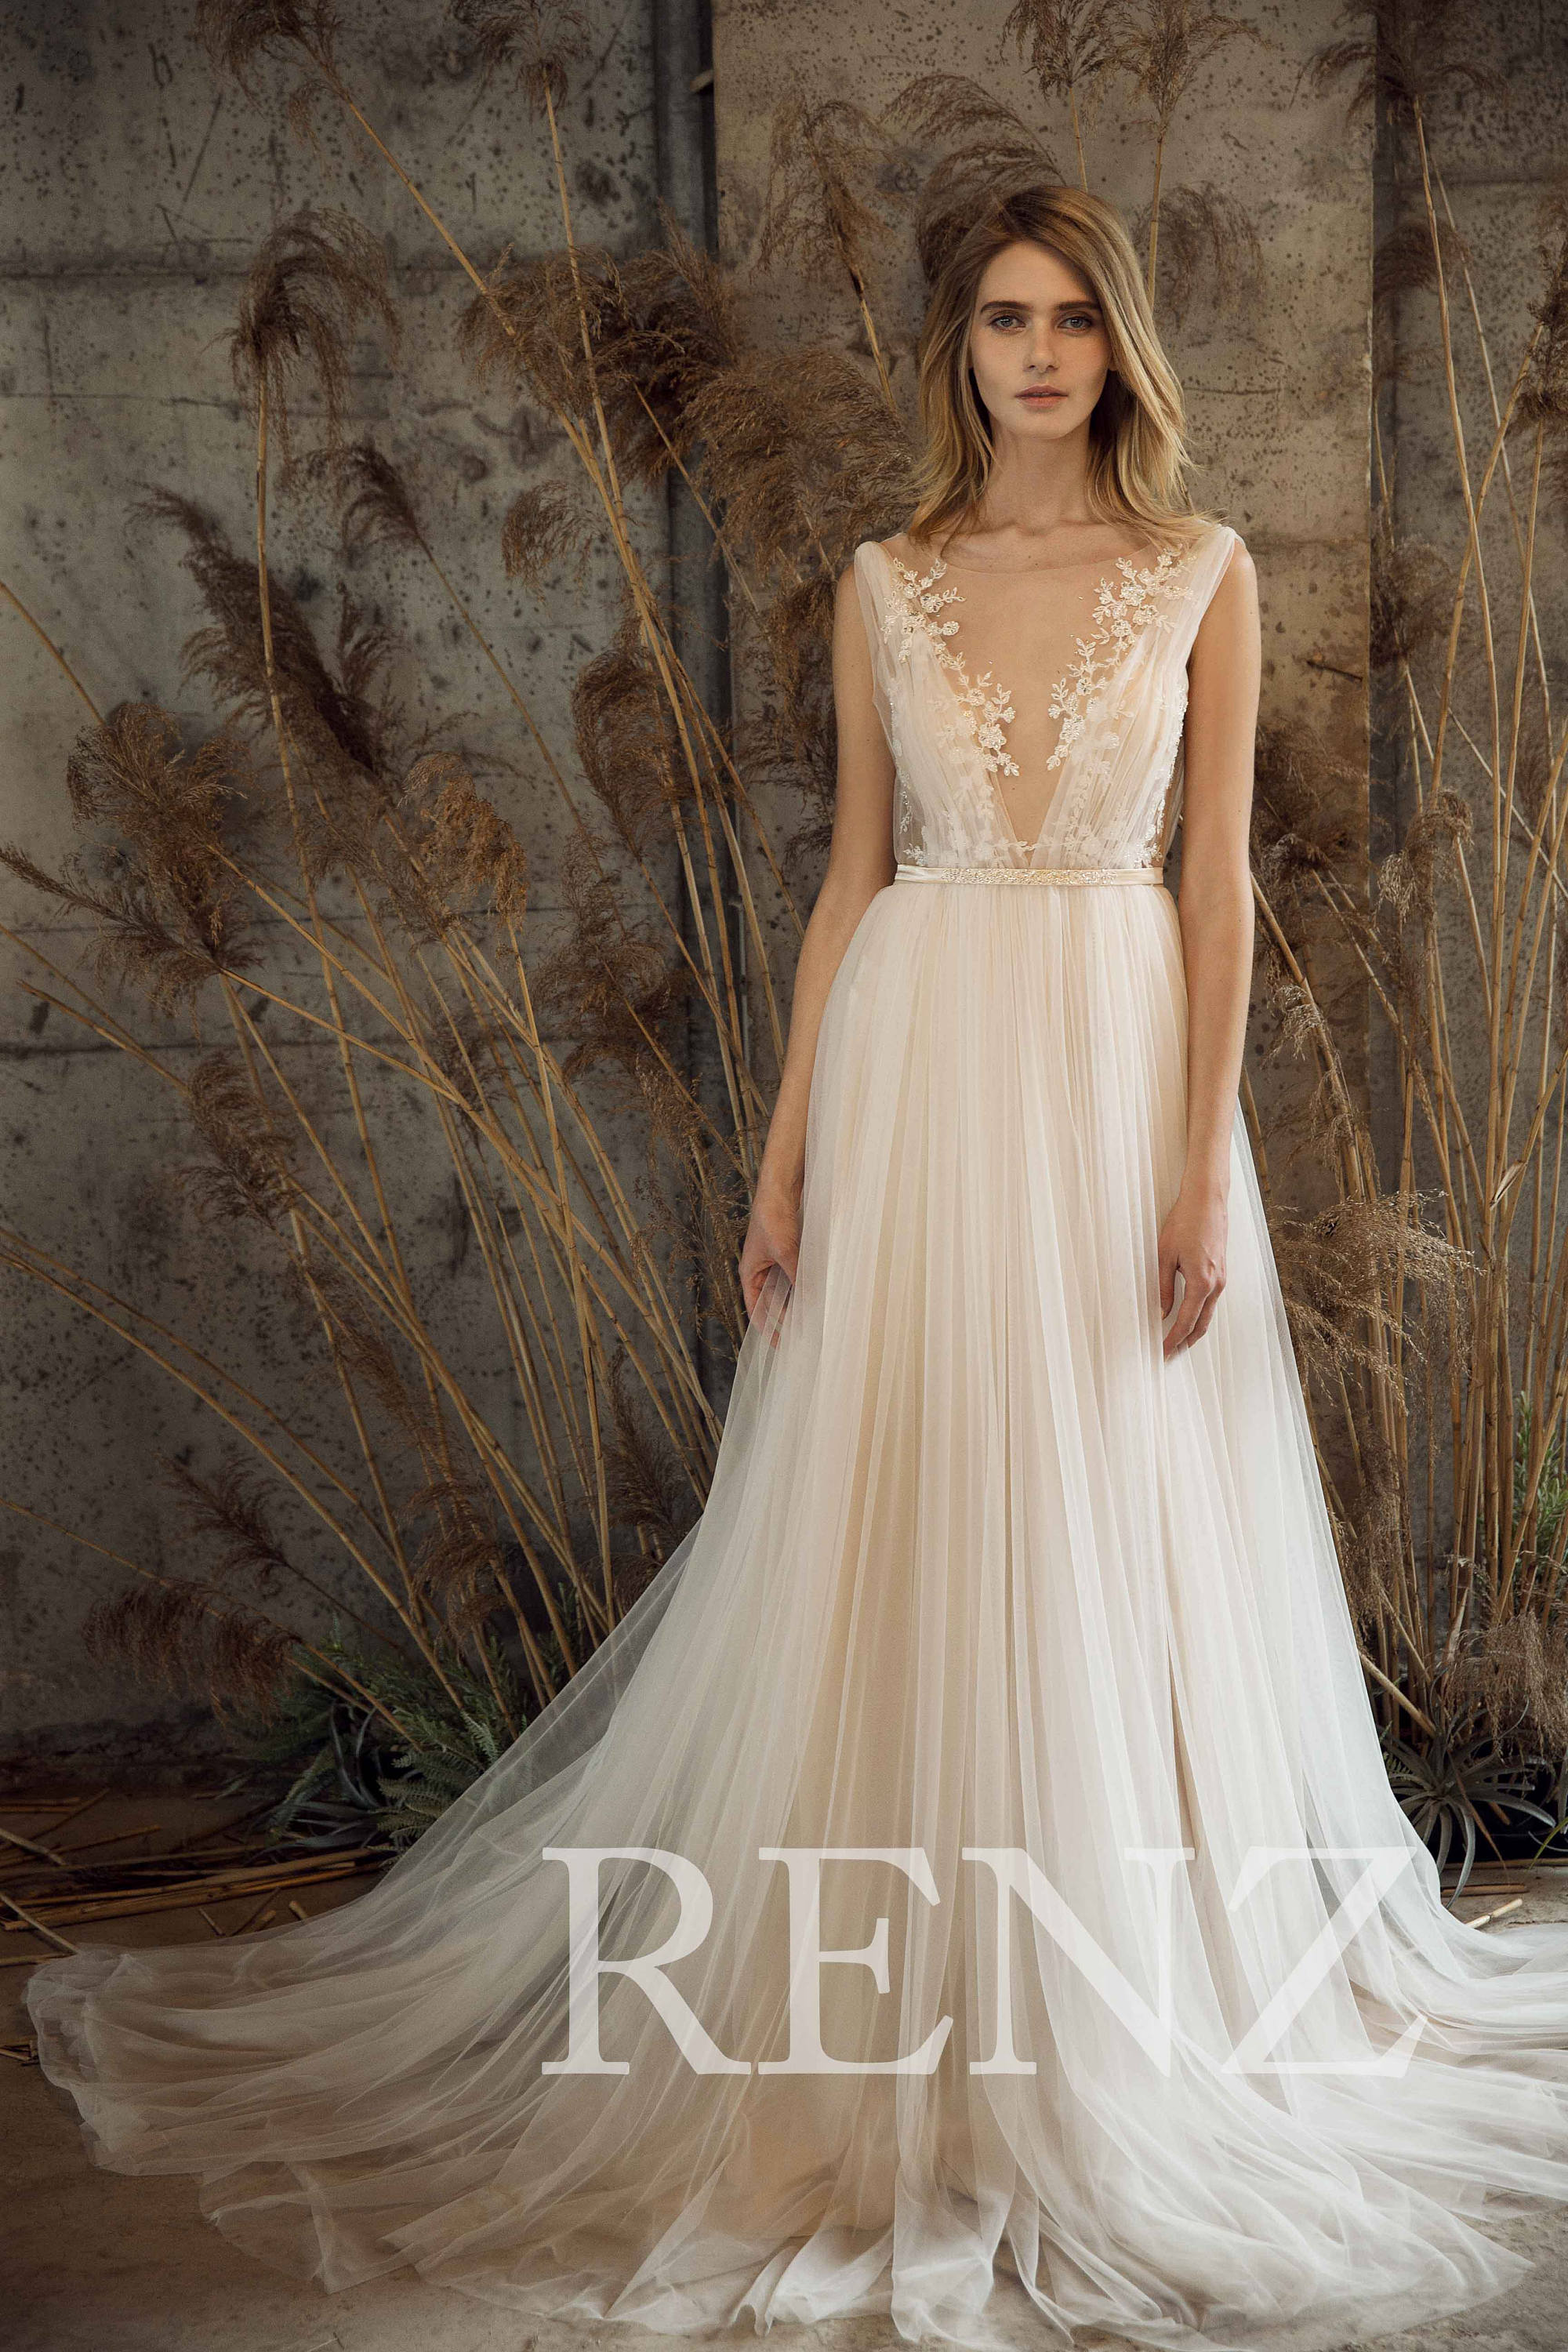 12 beautiful wedding dresses under 500 on etsy emmaline bride this dress is ethereal i adore the illusion tulle deep v neck and soft layered skirt for a romantic look by renz price 399 junglespirit Gallery